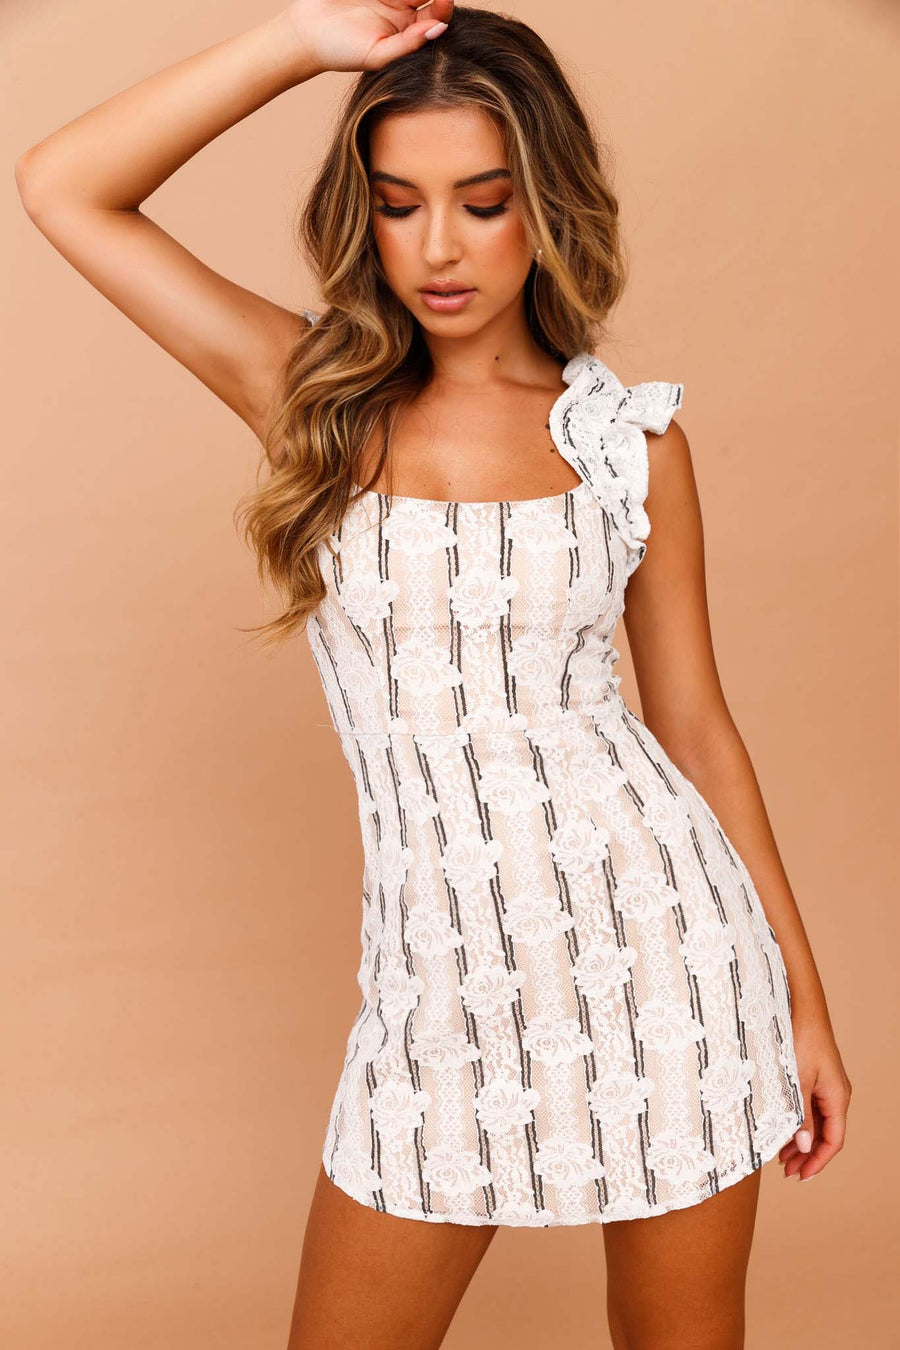 Get In Line Lace Mini Dress // White